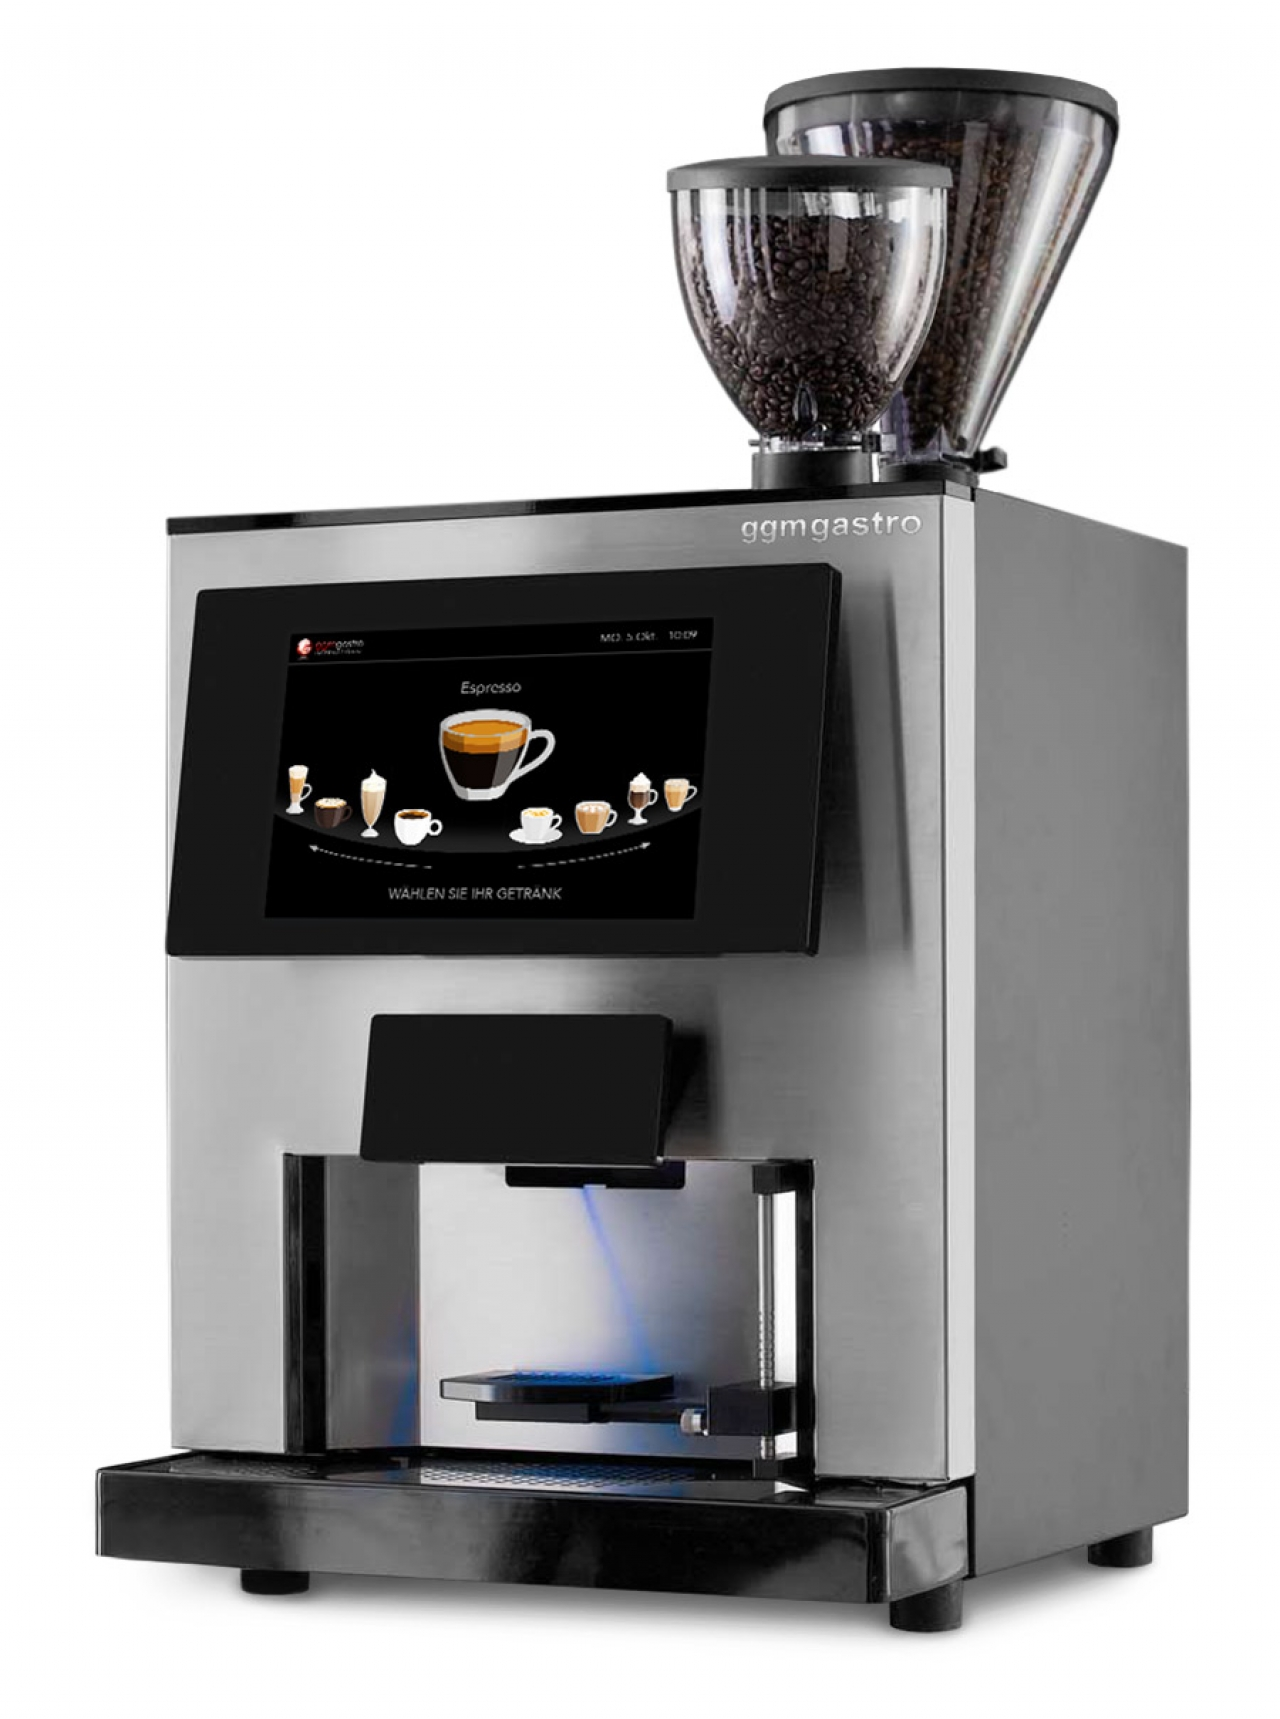 Fully-automatic coffee machine